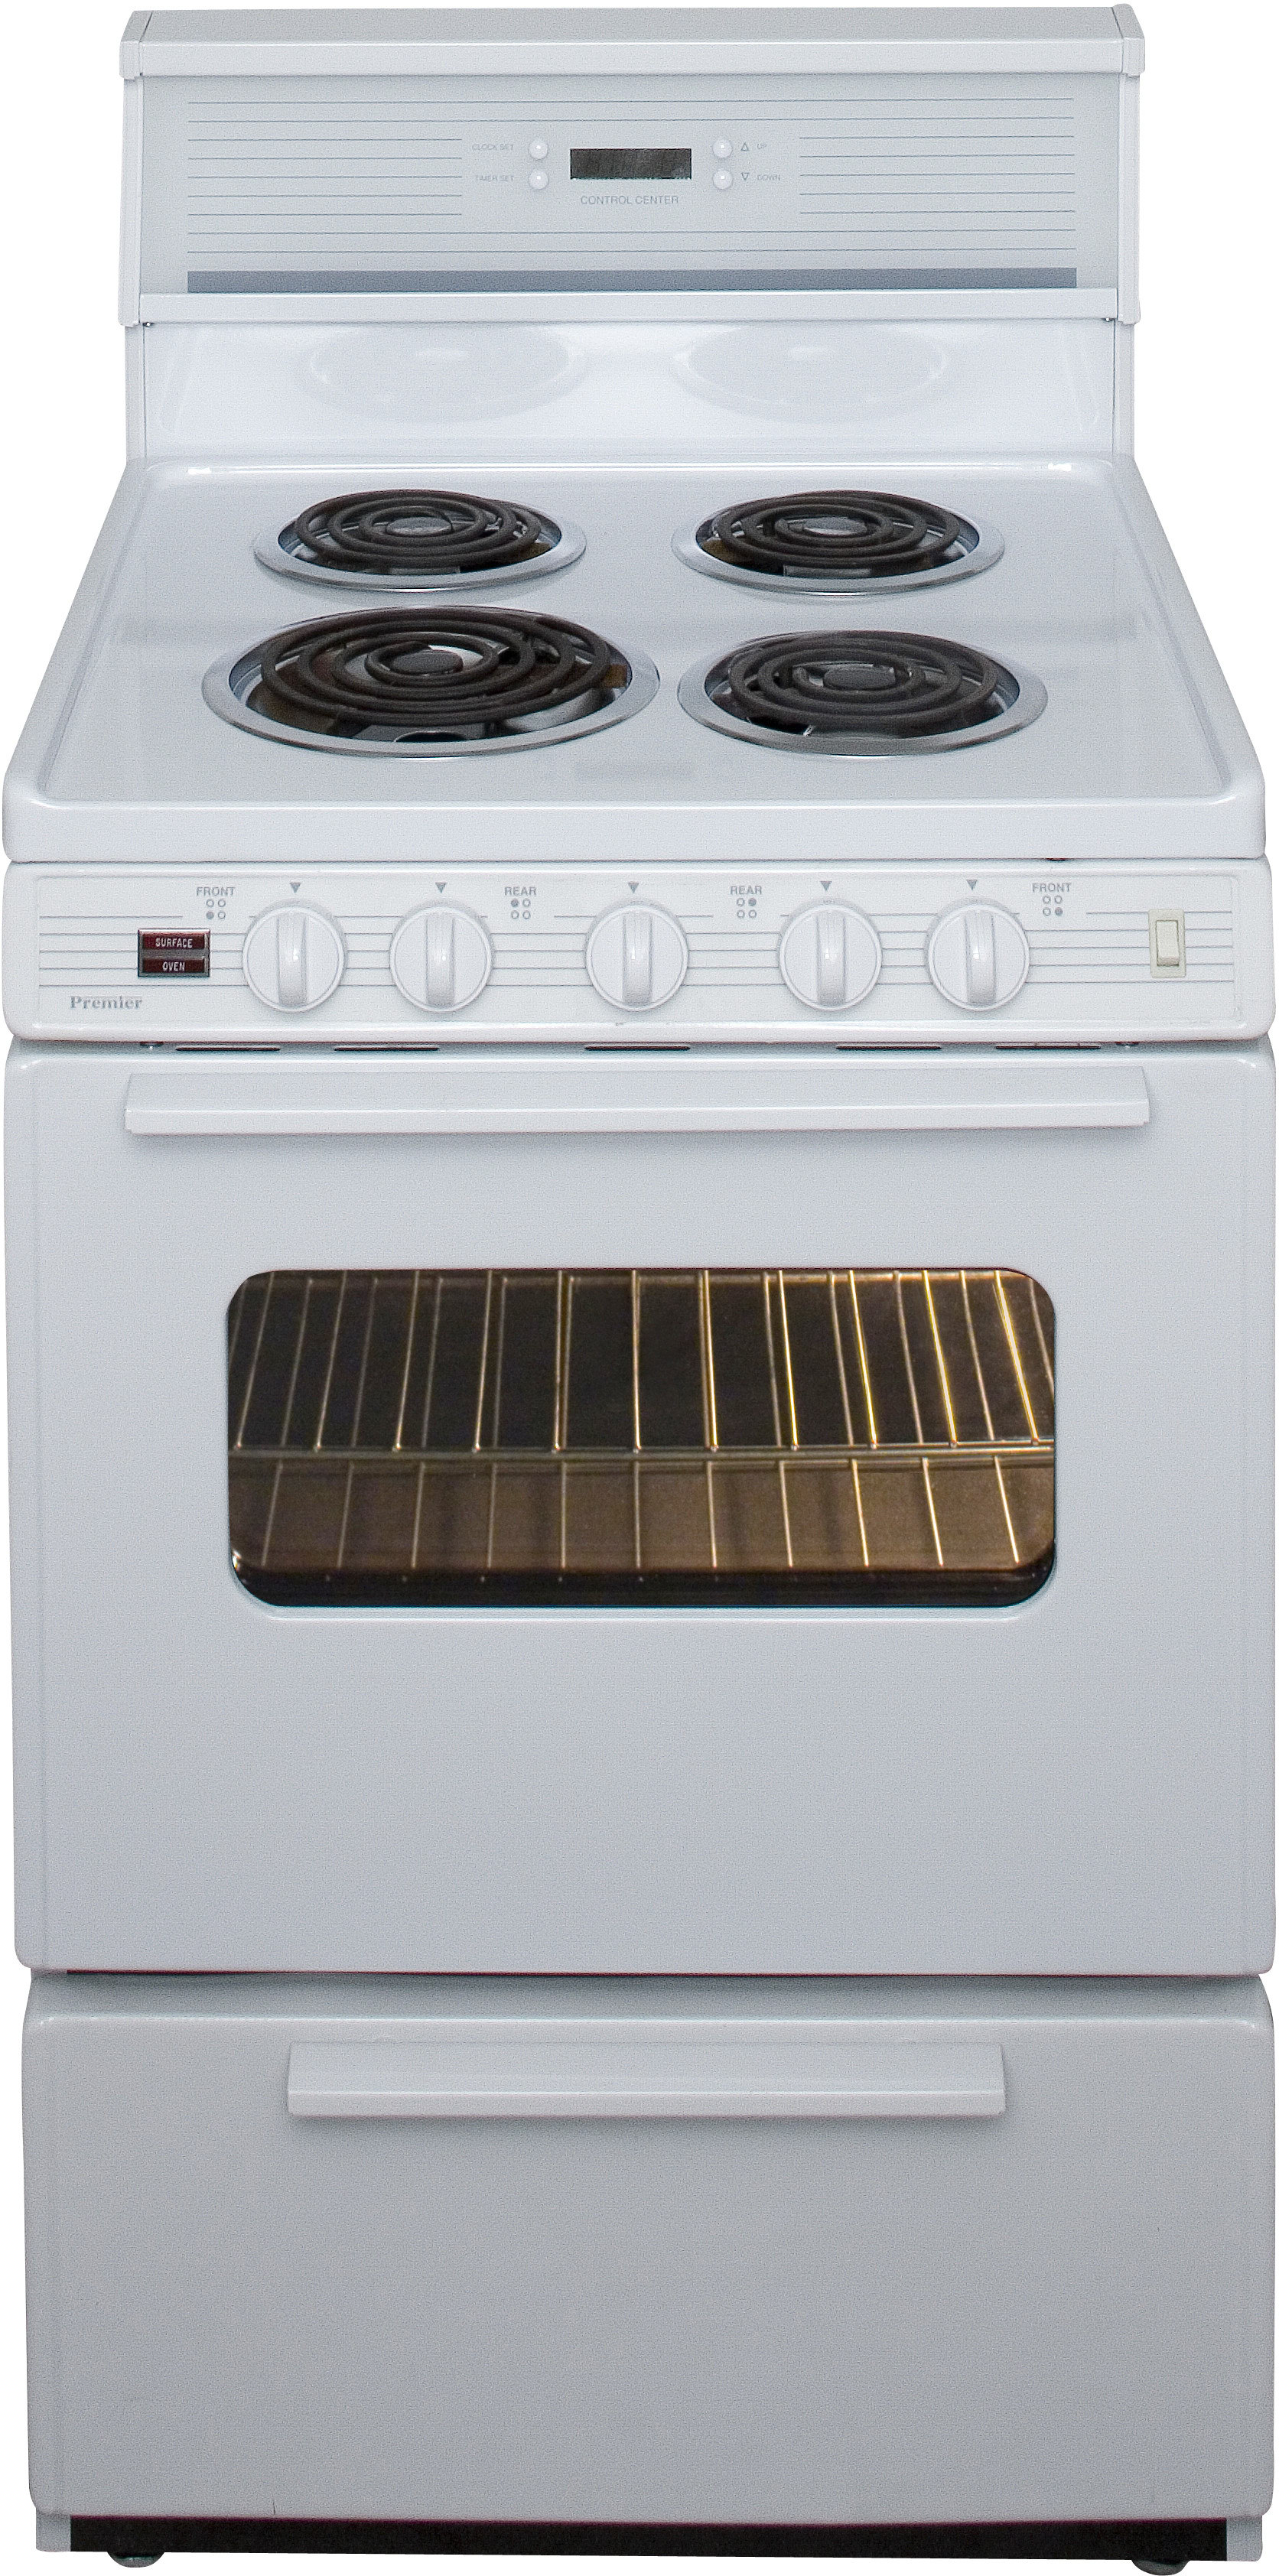 Premier Eck240o 24 Inch Freestanding Electric Range With 4